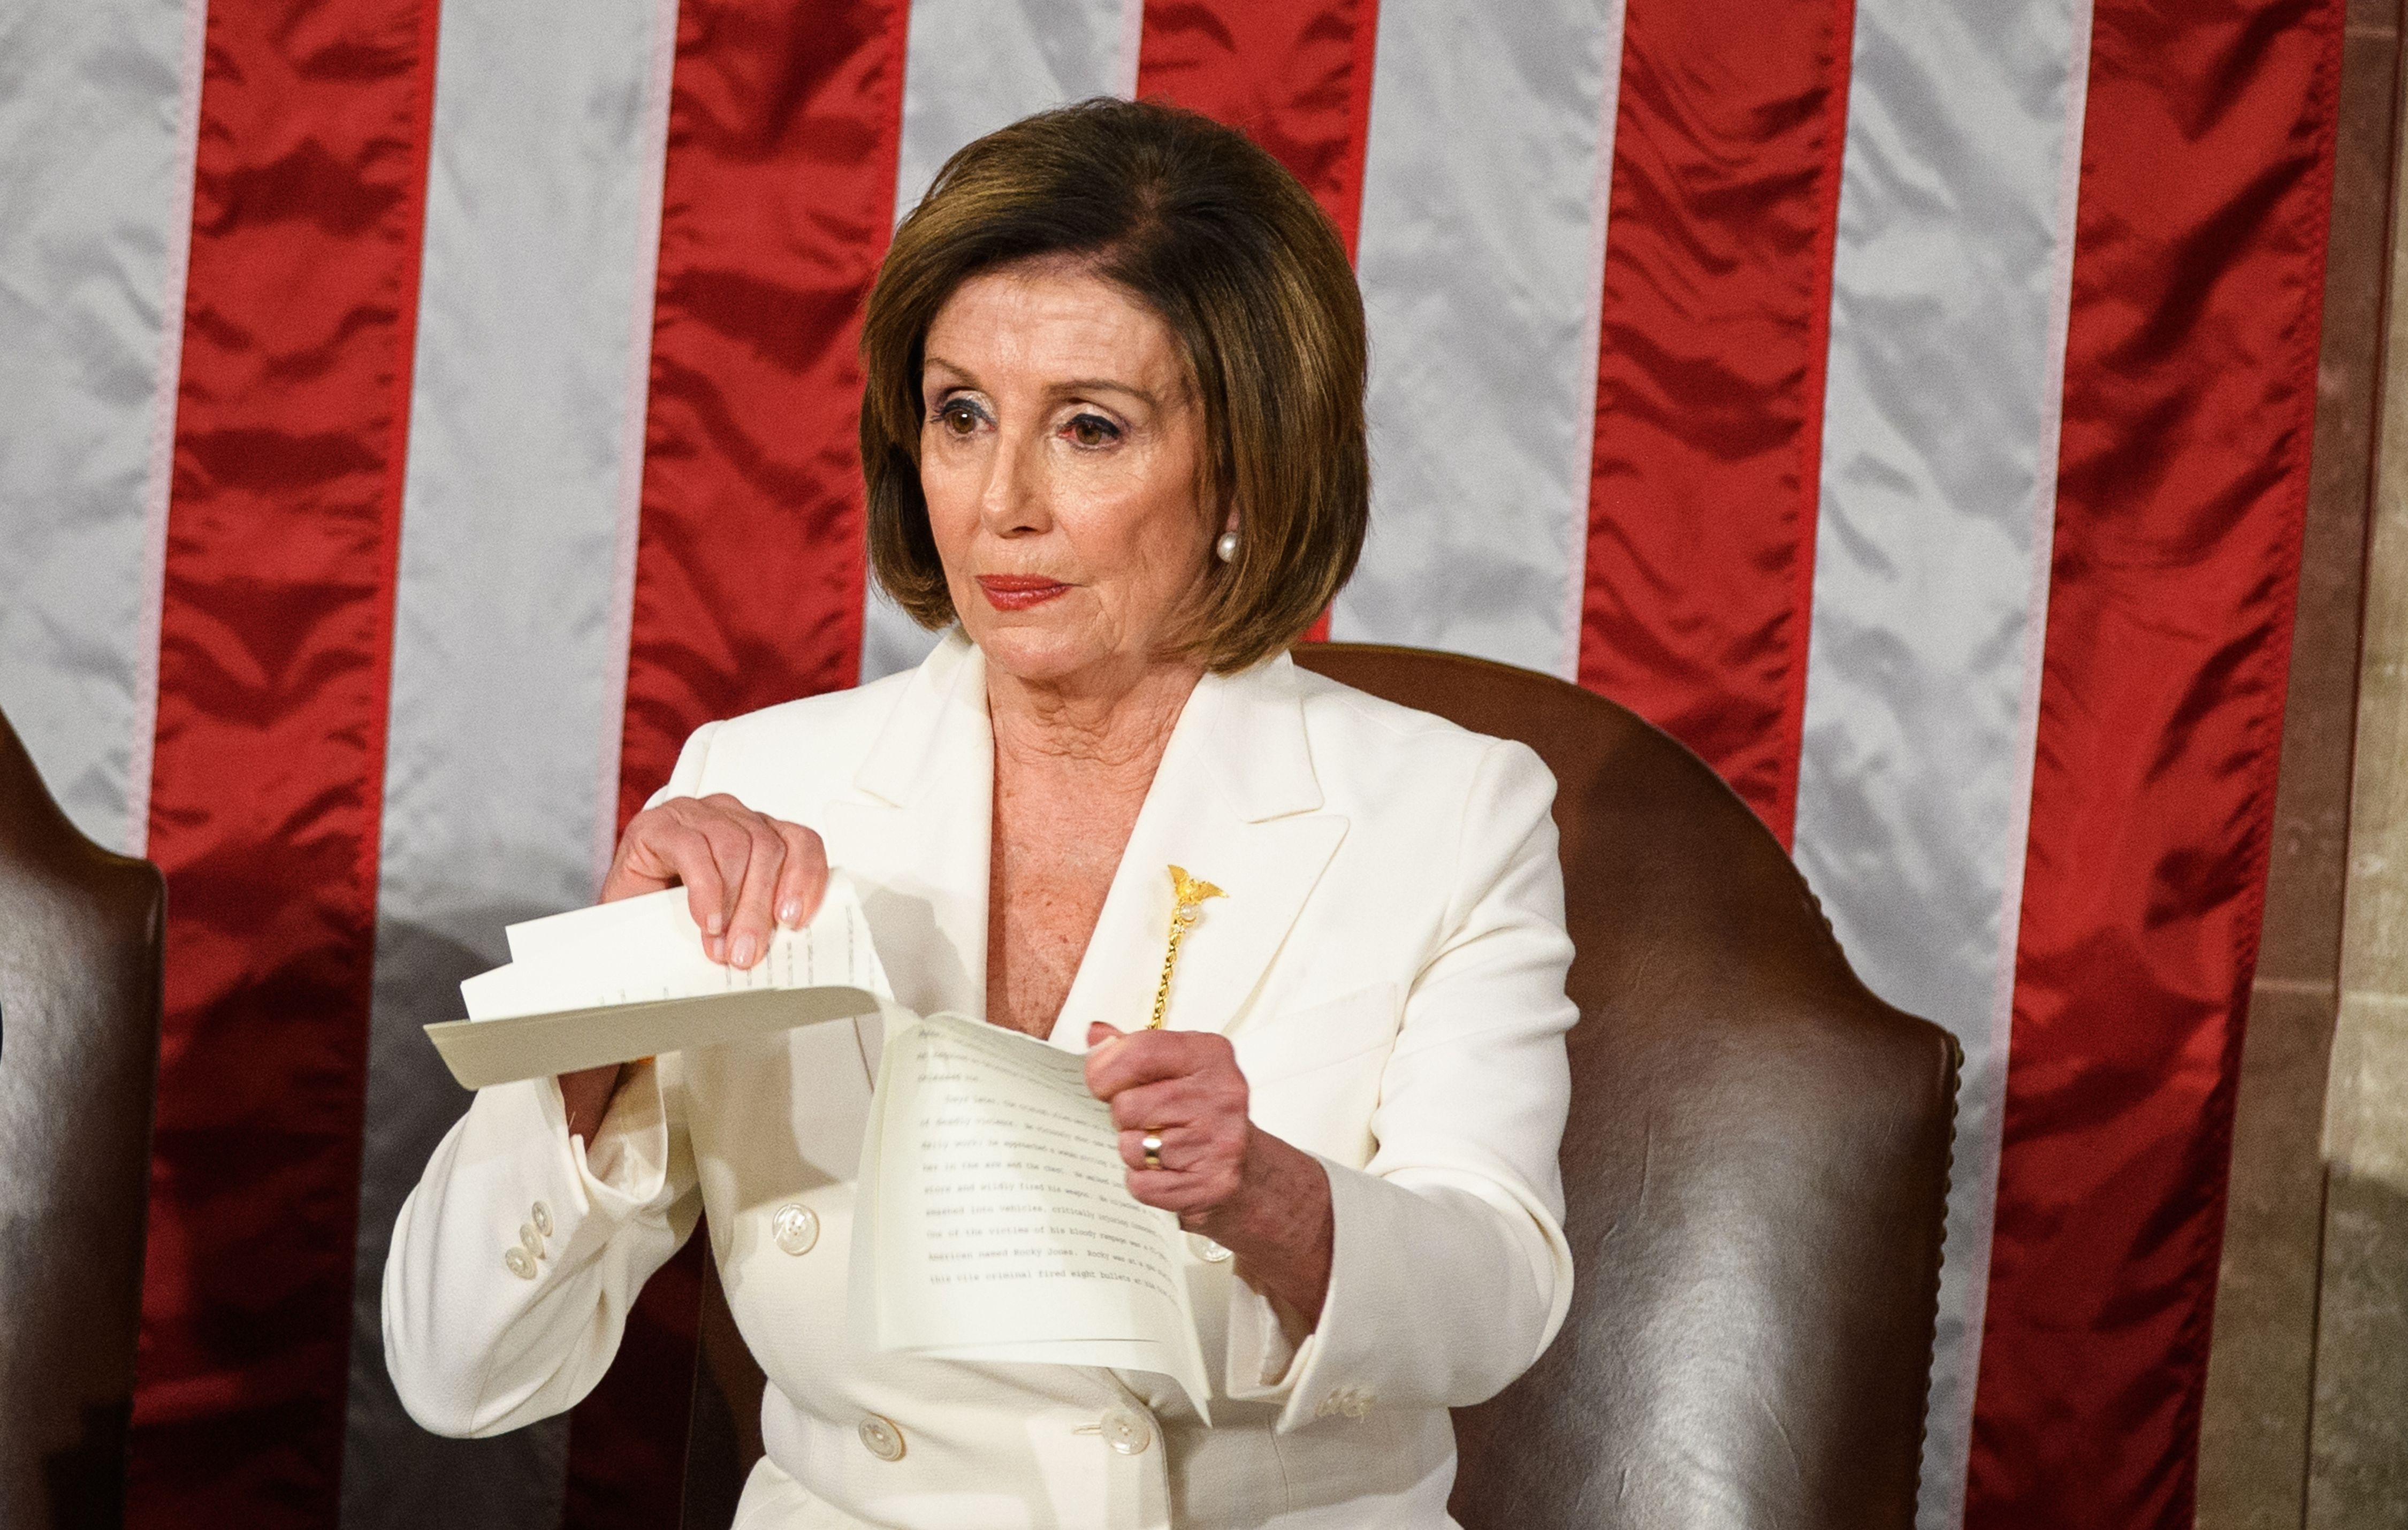 Speaker of the US House of Representatives Nancy Pelosi rips a copy of US President Donald Trumps speech after he delivers the State of the Union address at the US Capitol in Washington, DC, on February 4, 2020. (Photo by MANDEL NGAN / AFP) (Photo by MANDEL NGAN/AFP via Getty Images)